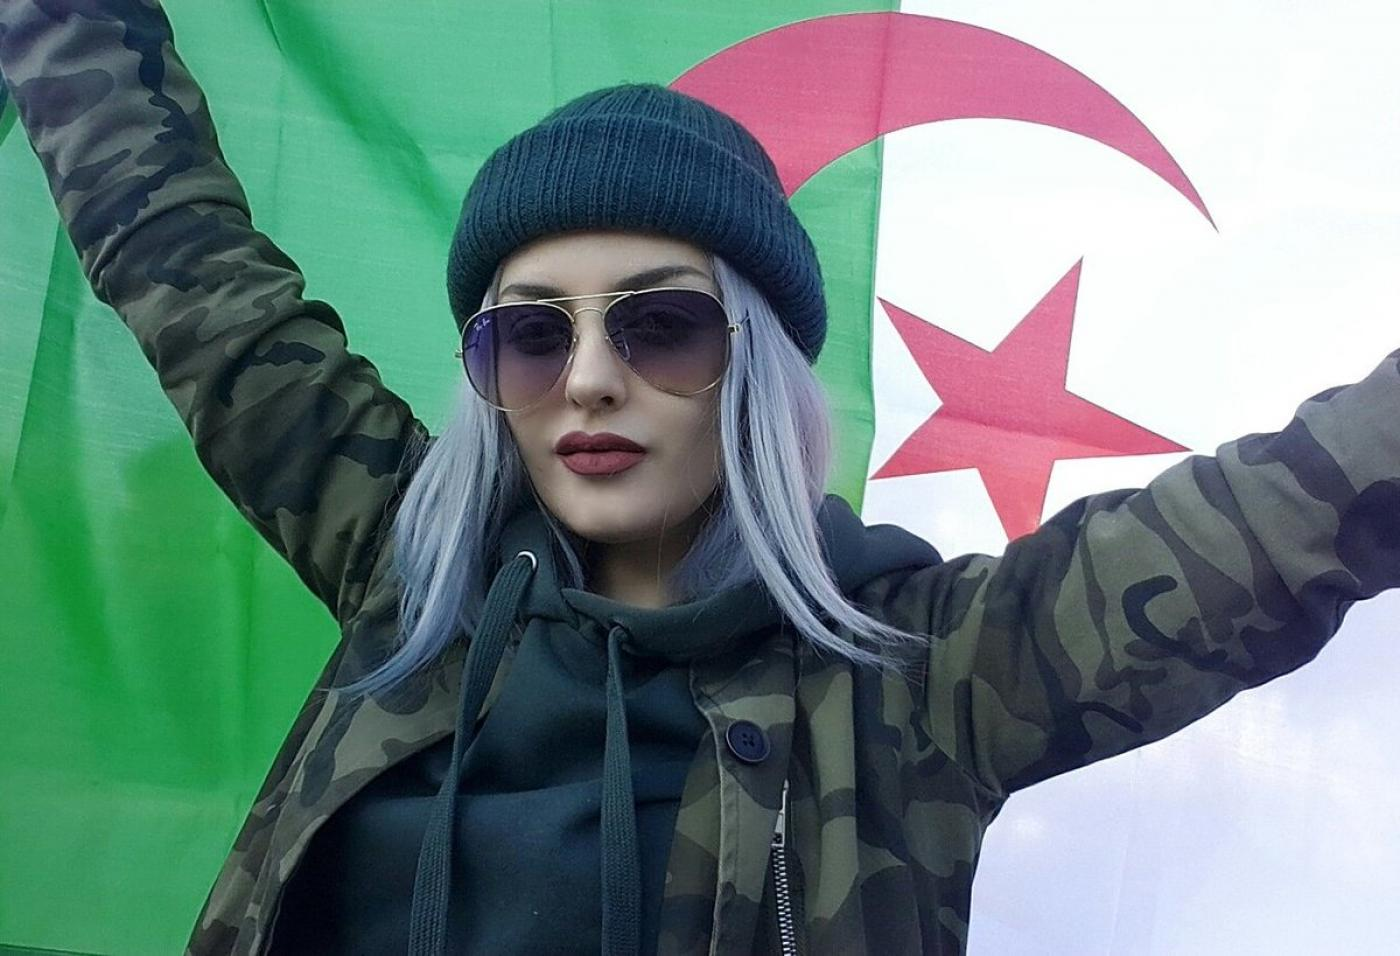 We are the flood': The Algerian artists voicing the protest movement